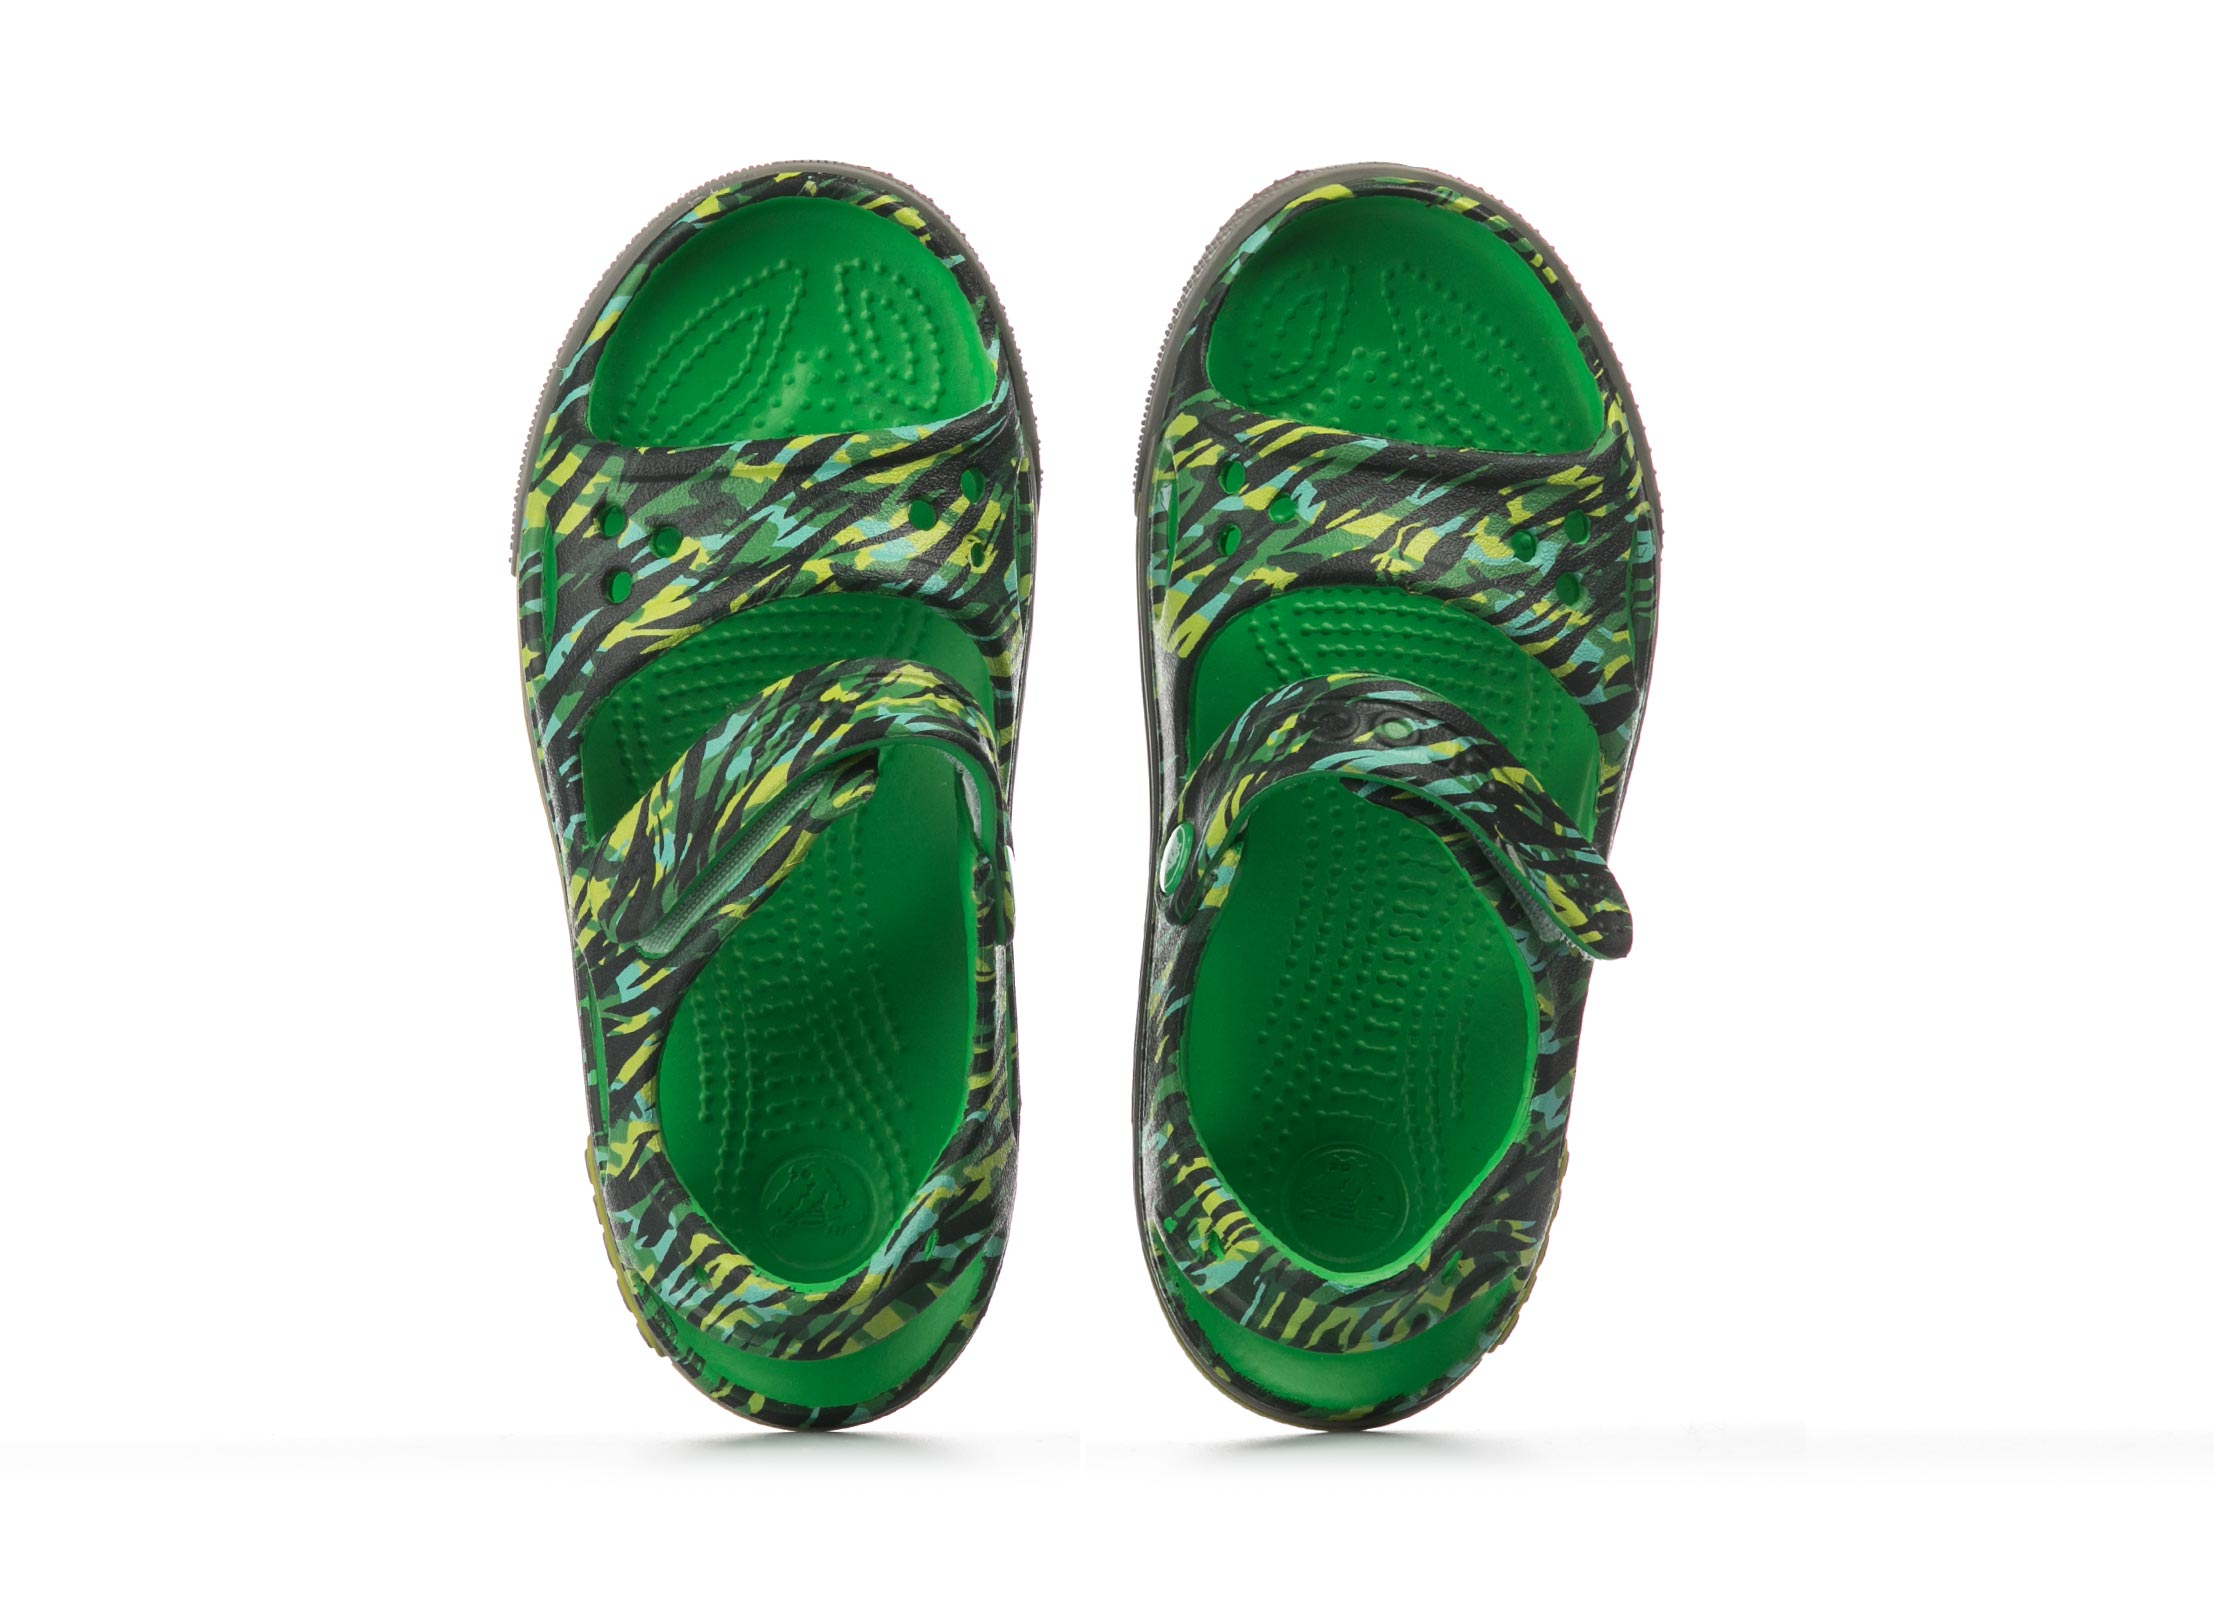 CROCS GRAPHIC SANDAL 204474-3E8 Πράσινο